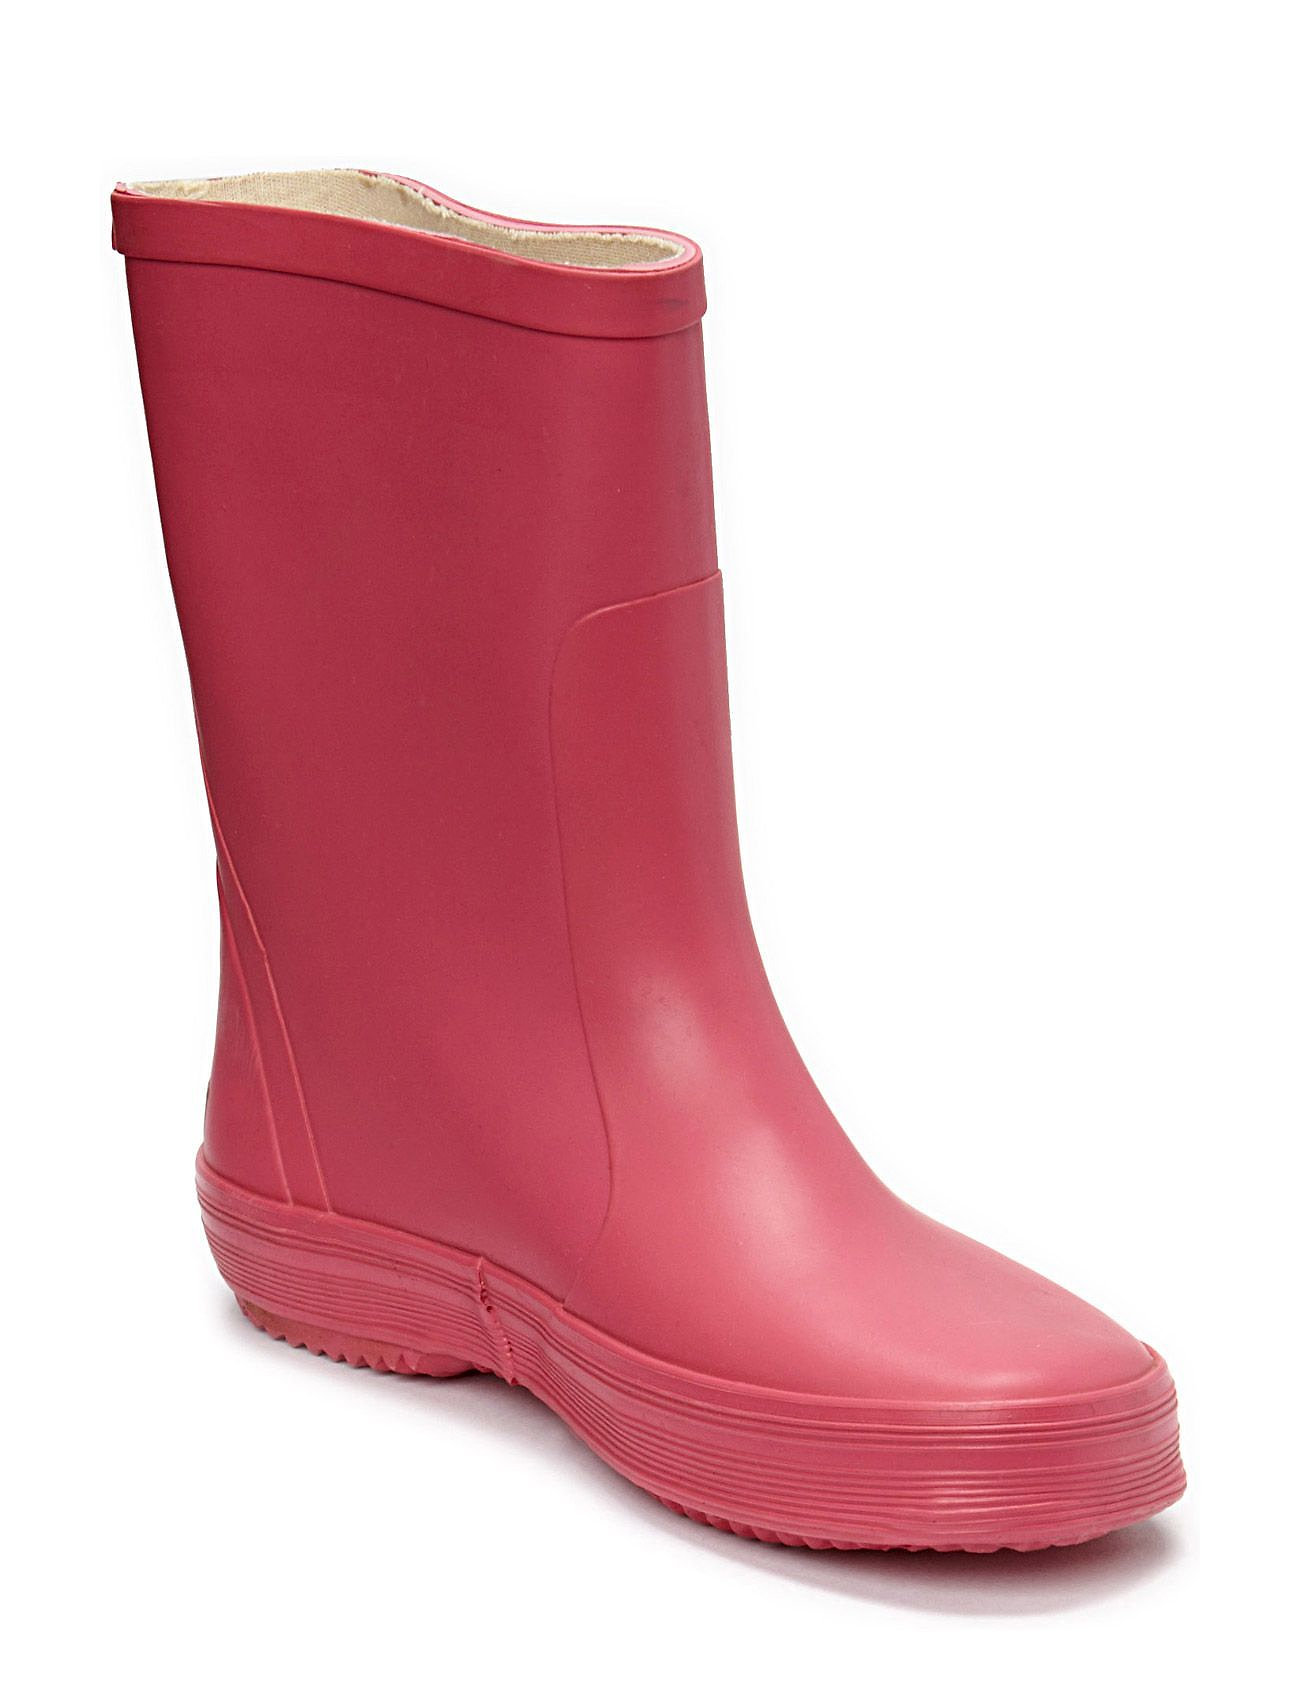 CeLaVi Basic wellies -solid - REAL PINK